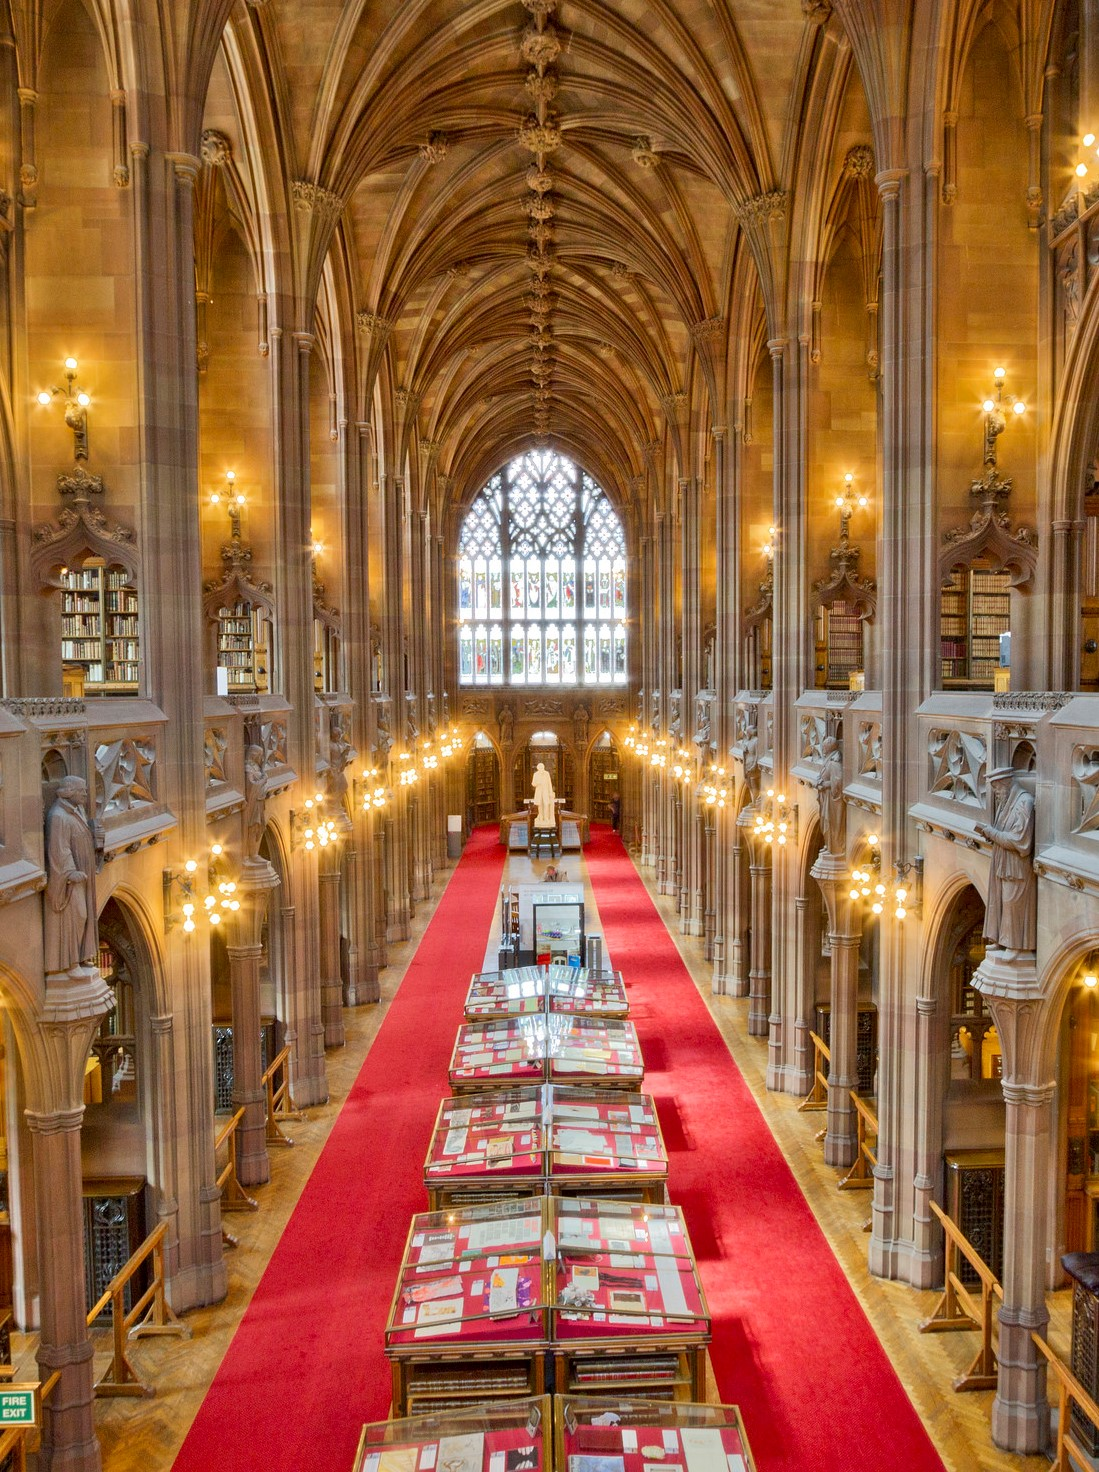 The John Rylands University Library